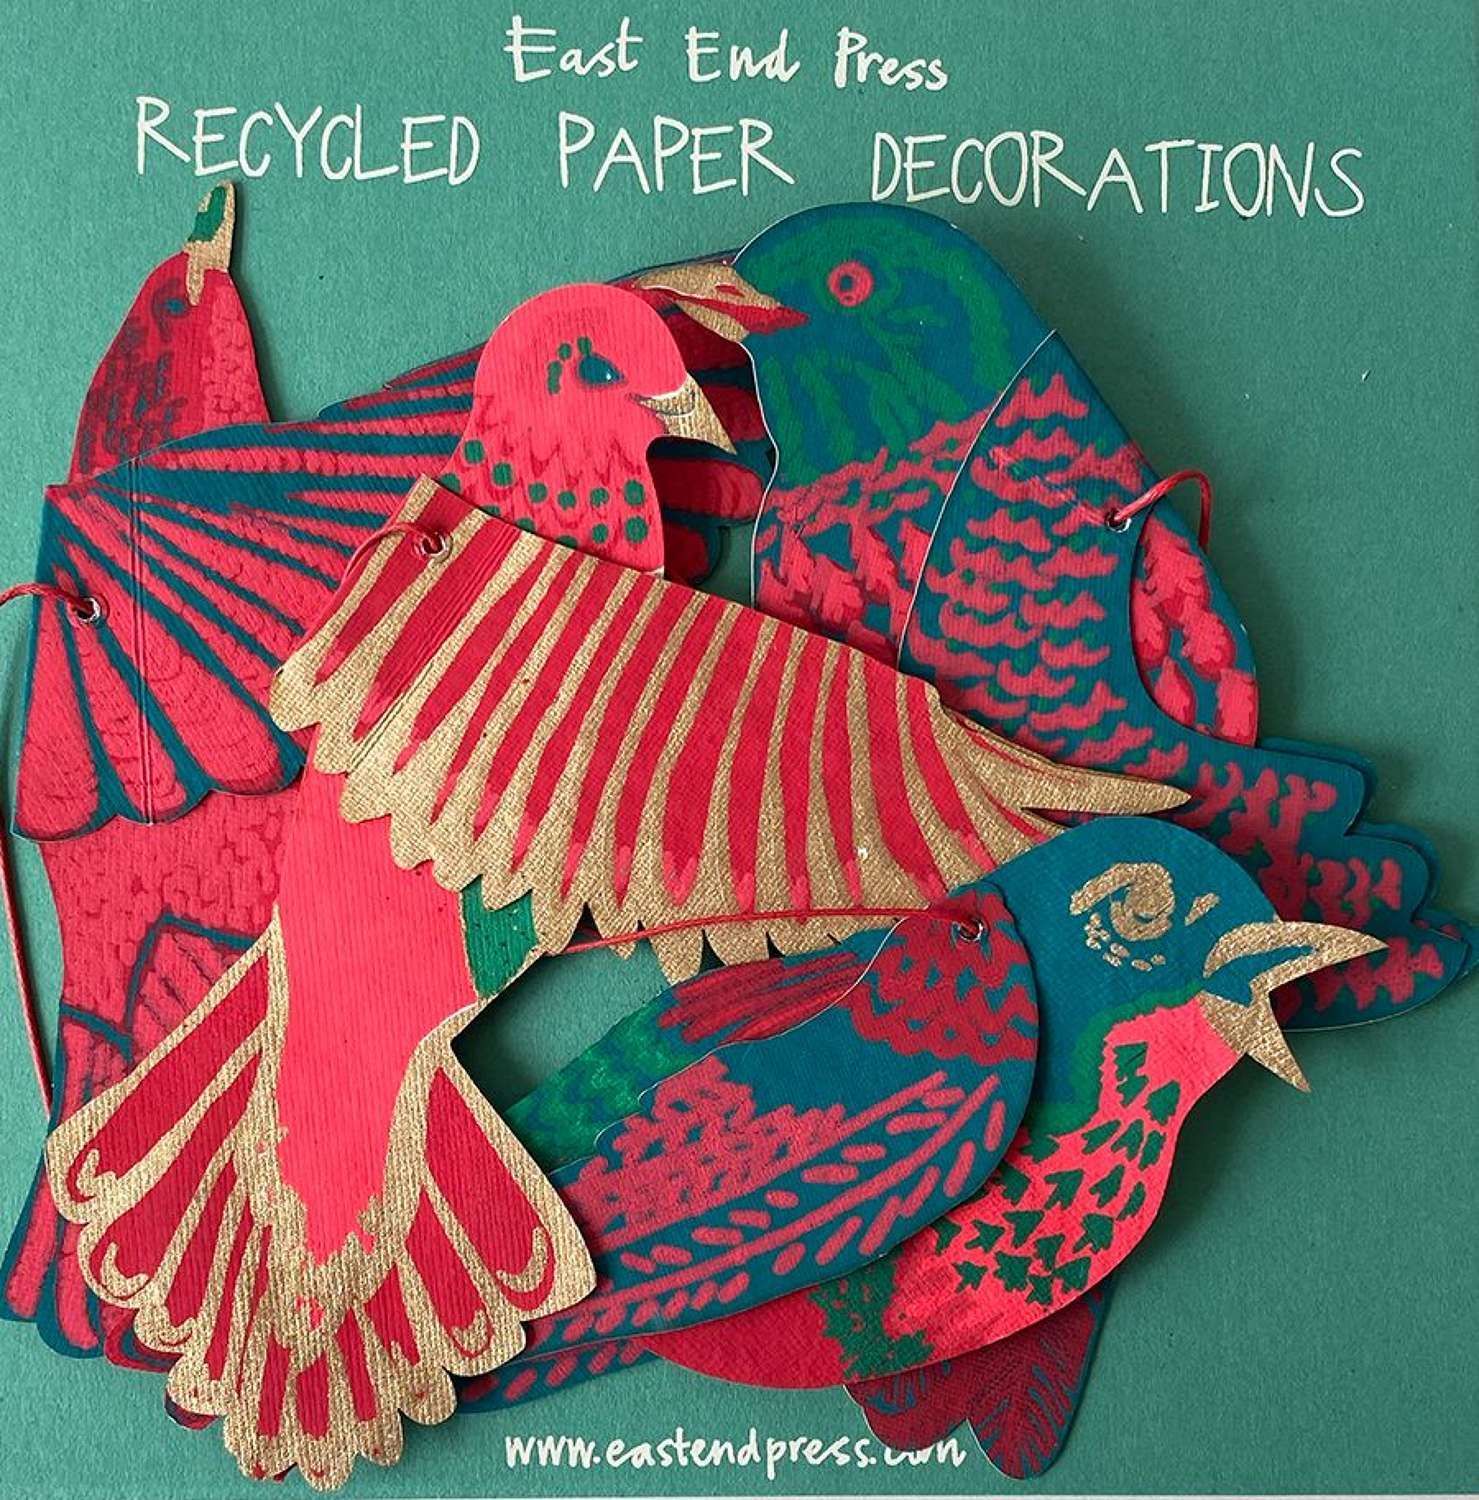 Hand Printed Paper Decorations